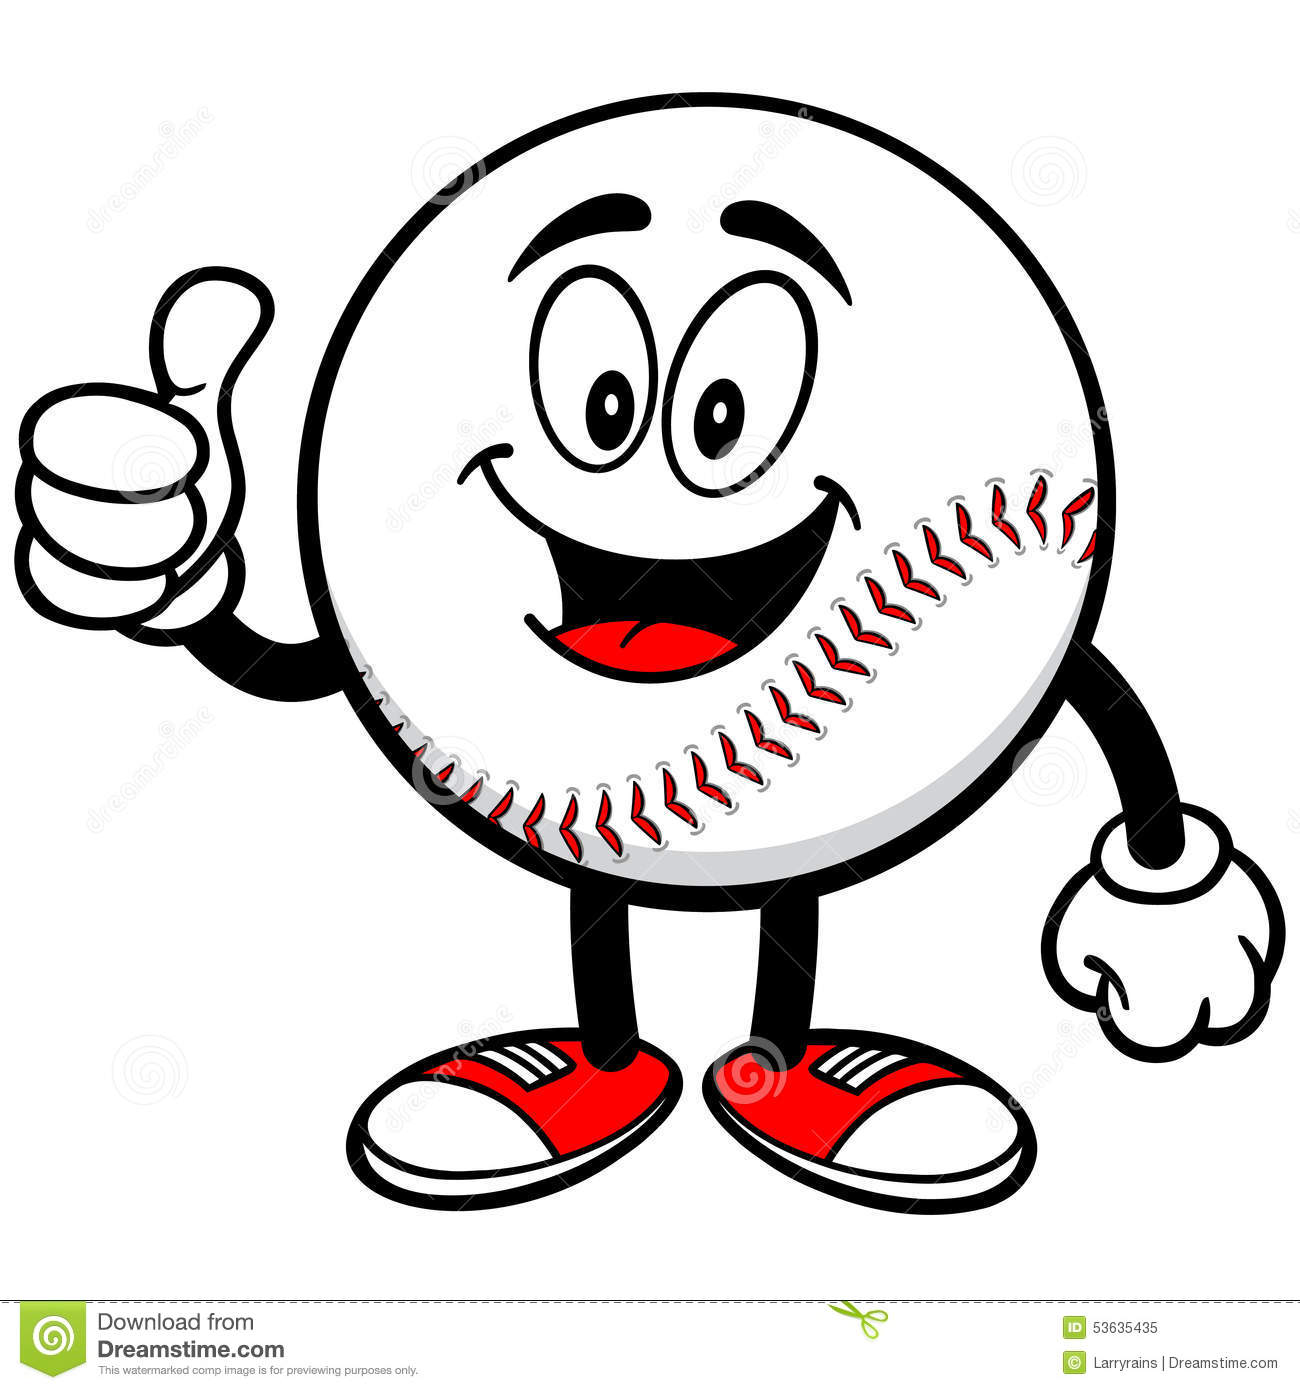 98938523039026650 additionally ShowPlein also Ultimate Baseball Coloring Sheets Roundup as well Clipart Cthf Bat as well Stock Illustration Baseball Mascot Thumbs Up Cartoon Illustration Image53635435. on s softball cartoon images